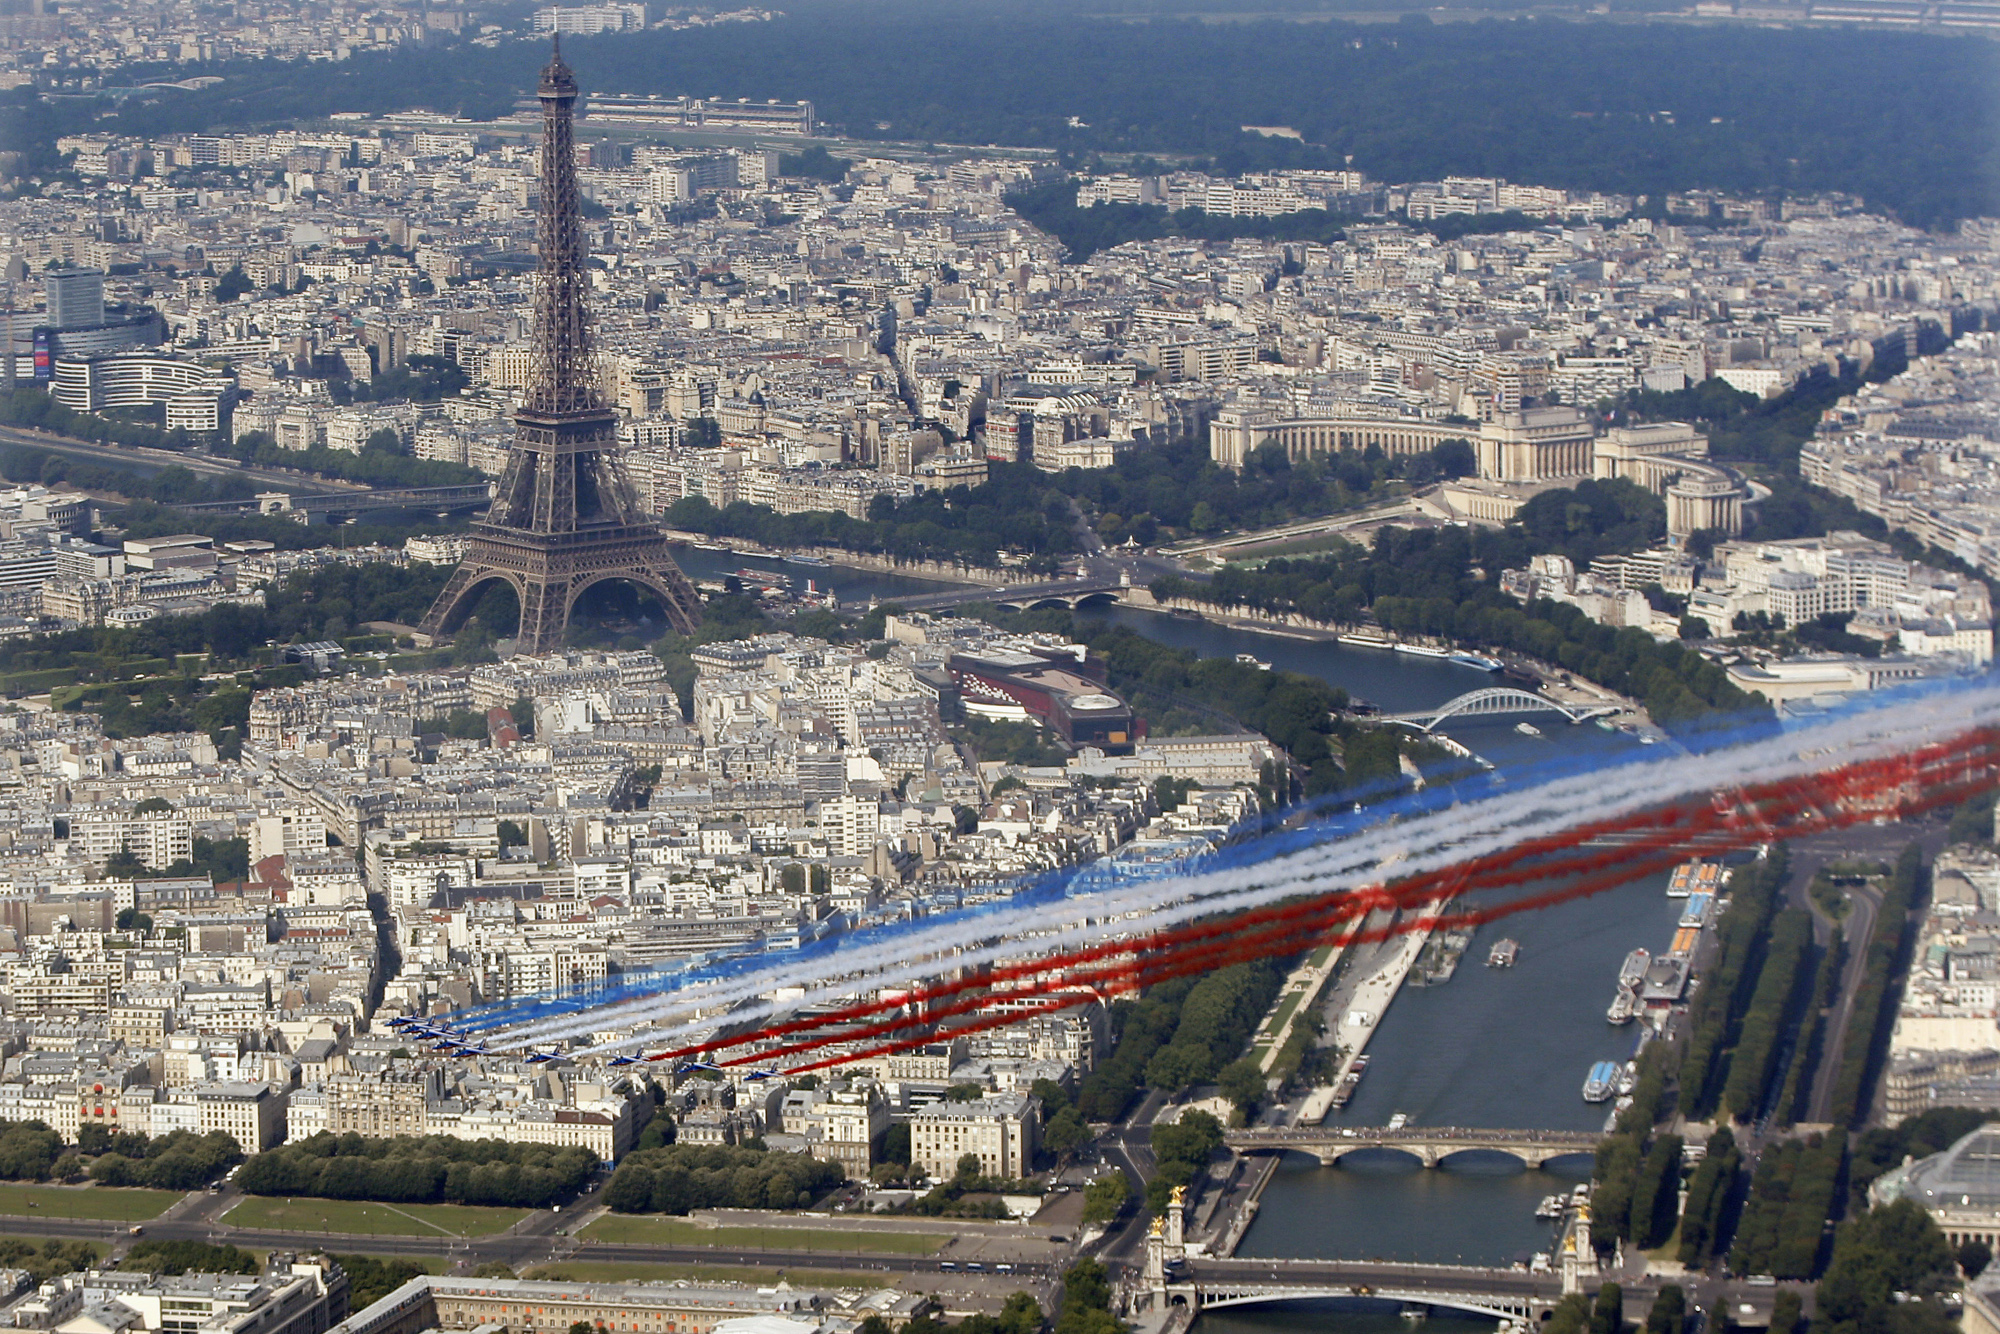 The French aerial display team Patrouille de France (French Aerobatic Patrol) flies in front